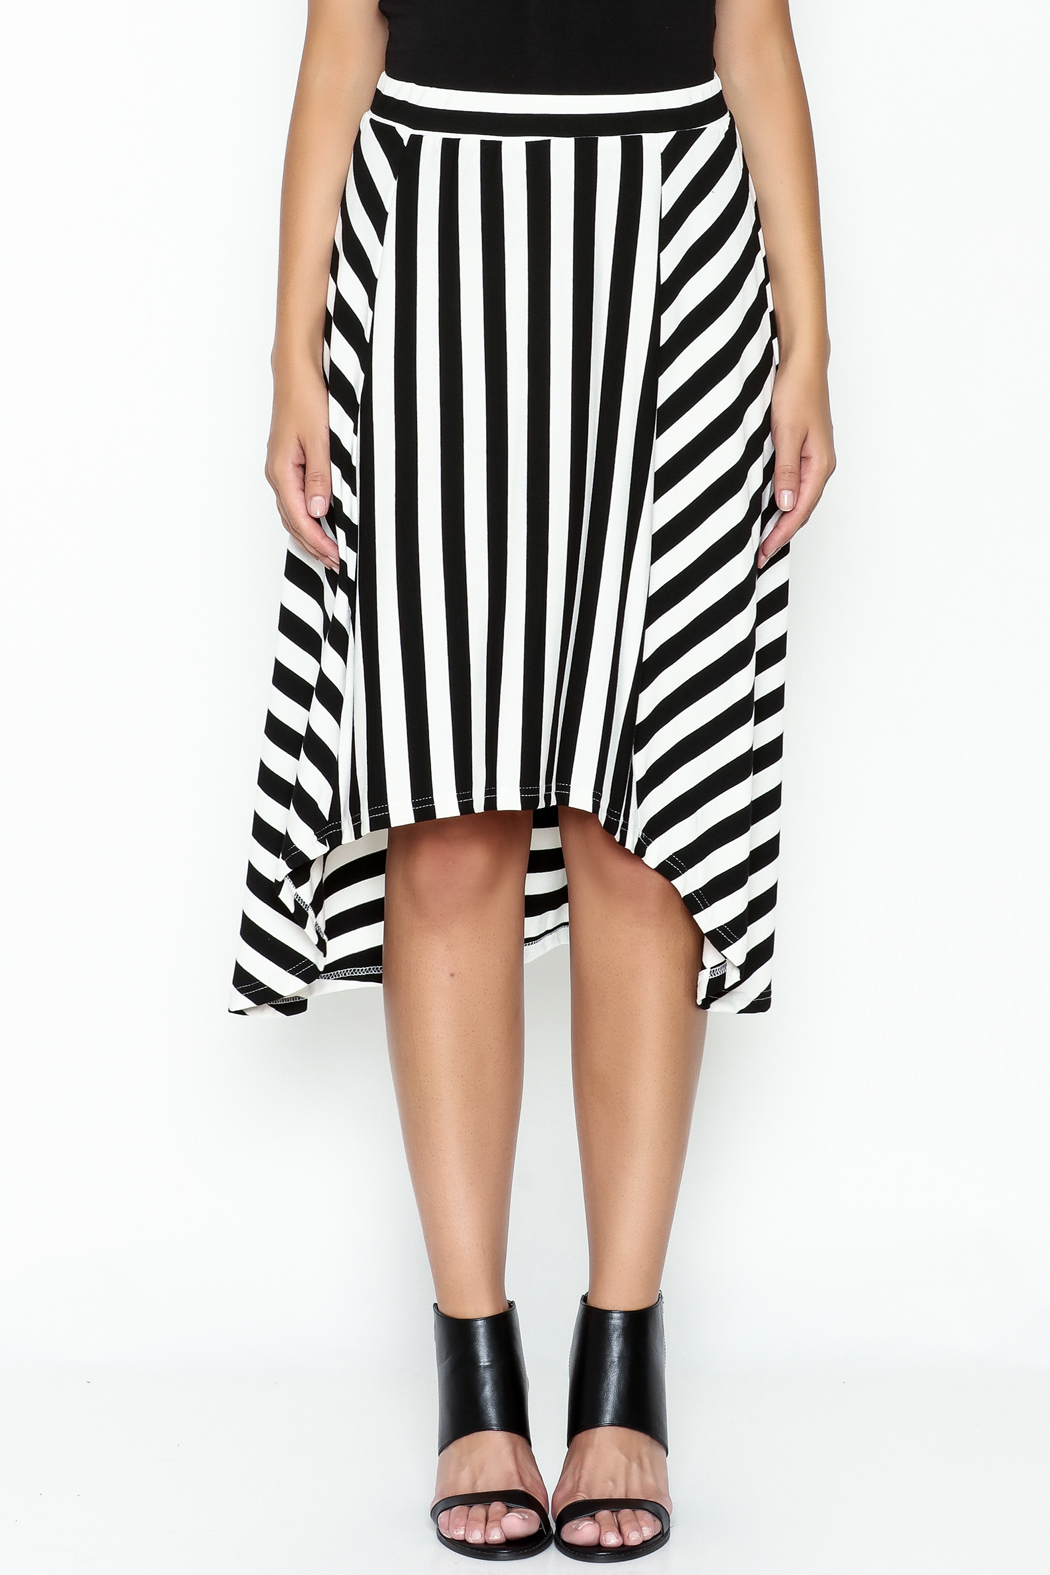 Coco + Carmen Striped Hi Low Skirt - Front Full Image